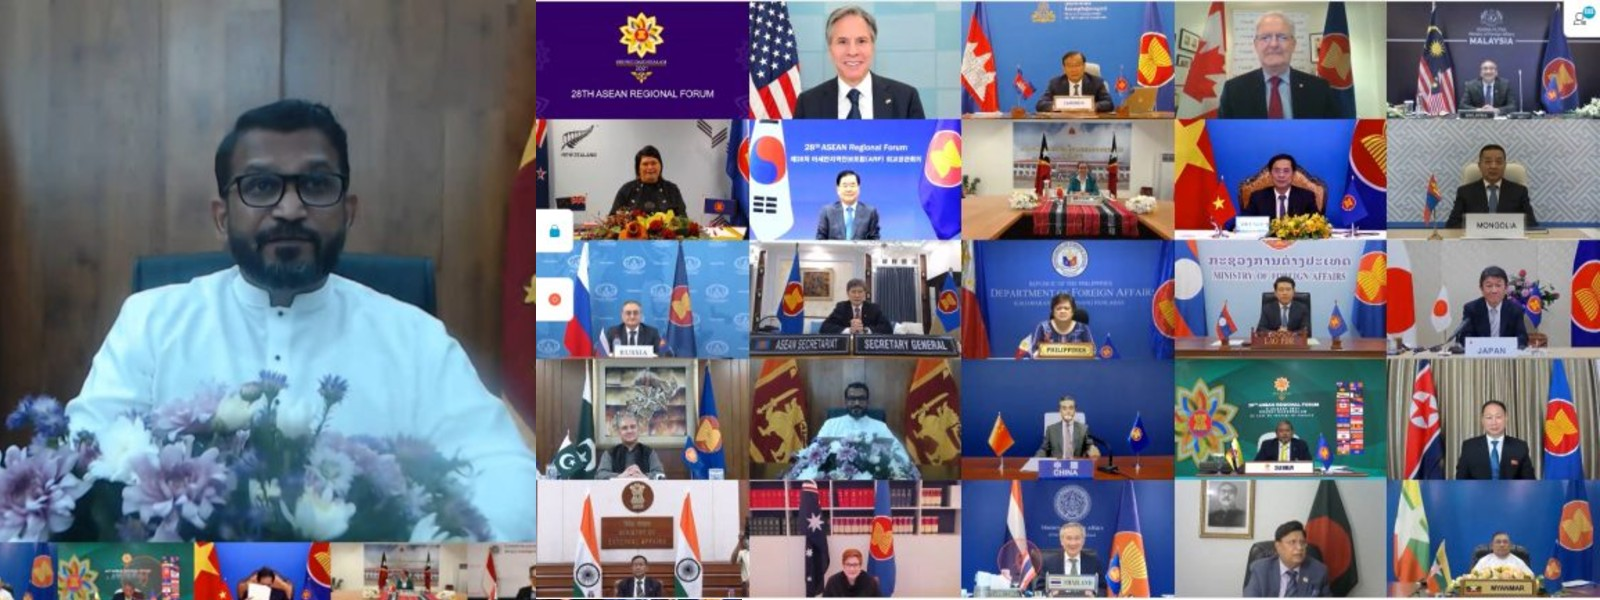 Sri Lanka's commitment for enhanced cooperation stressed at the 28th ASEAN Regional Forum (ARF)